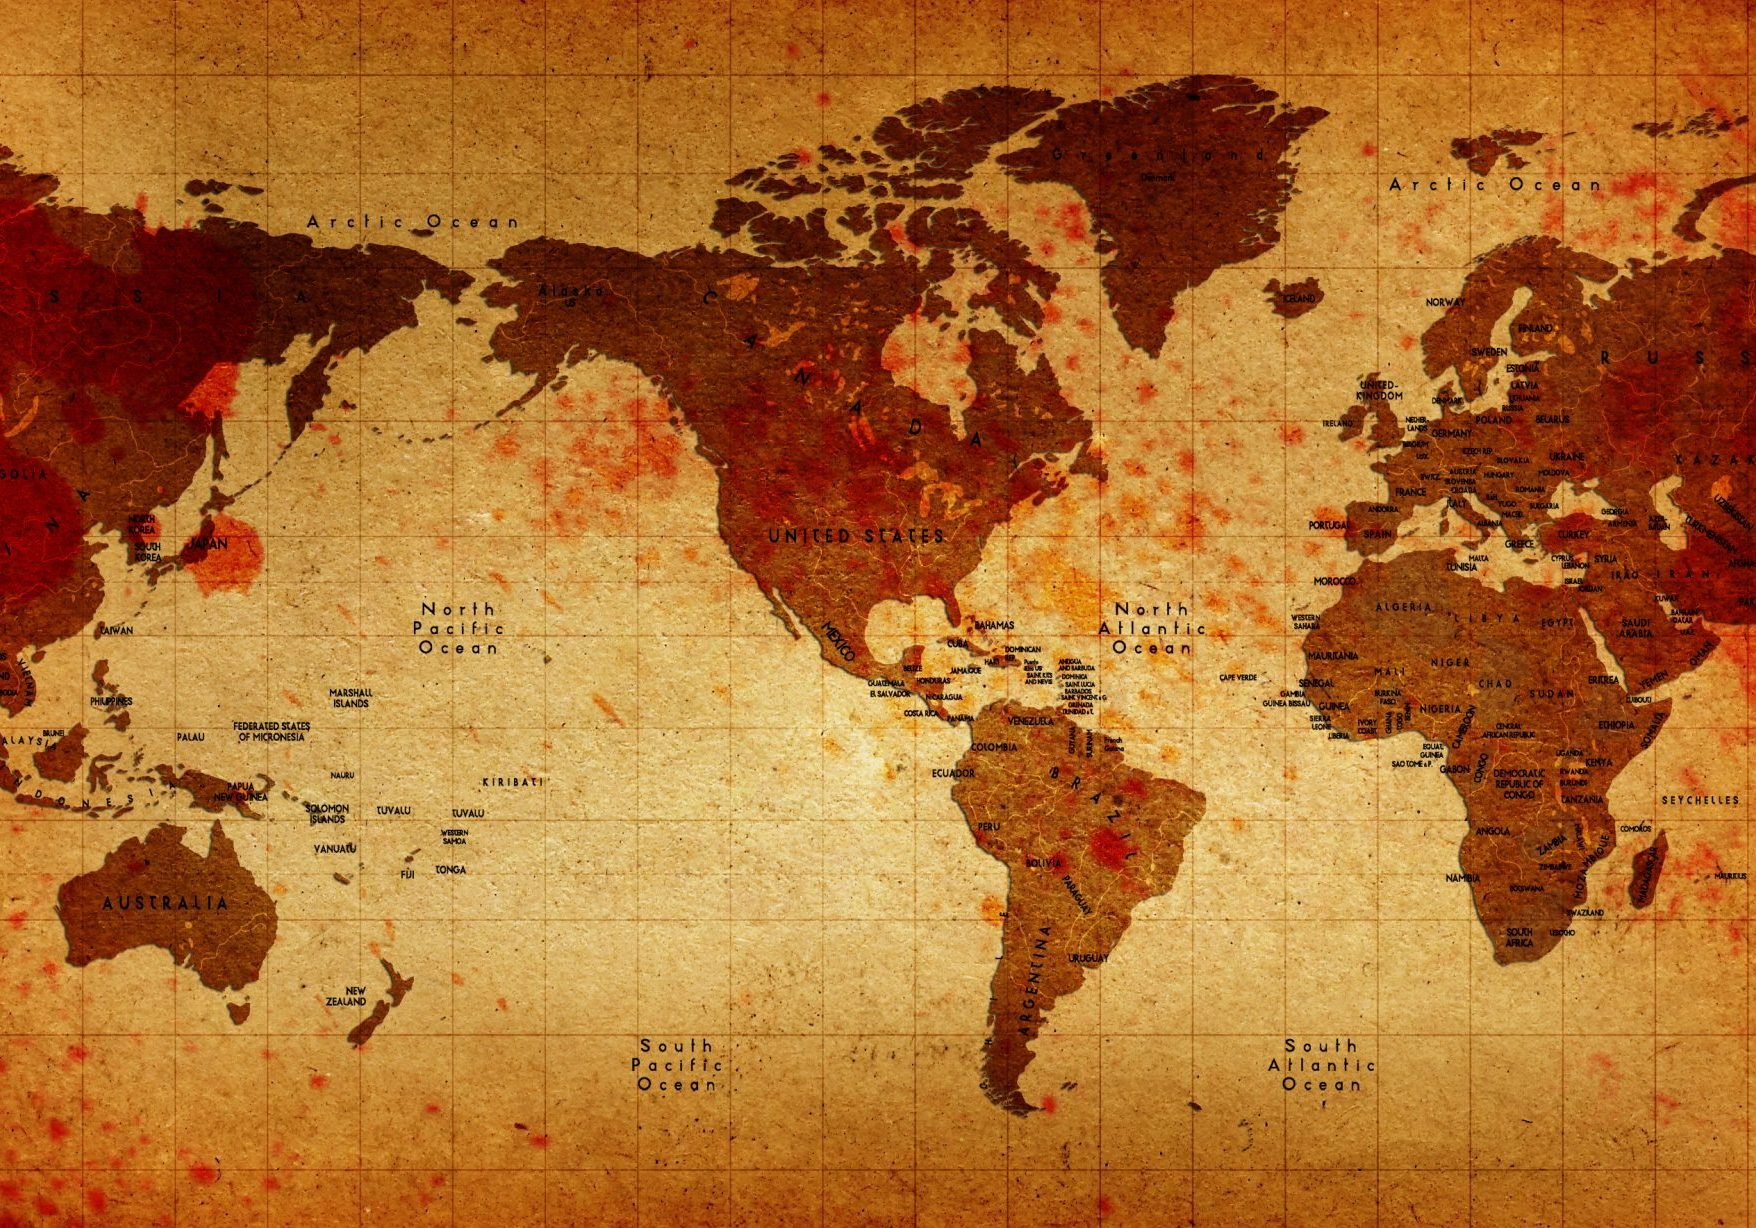 bigstock-Old-America-Centered-Bloody-Wo-703208